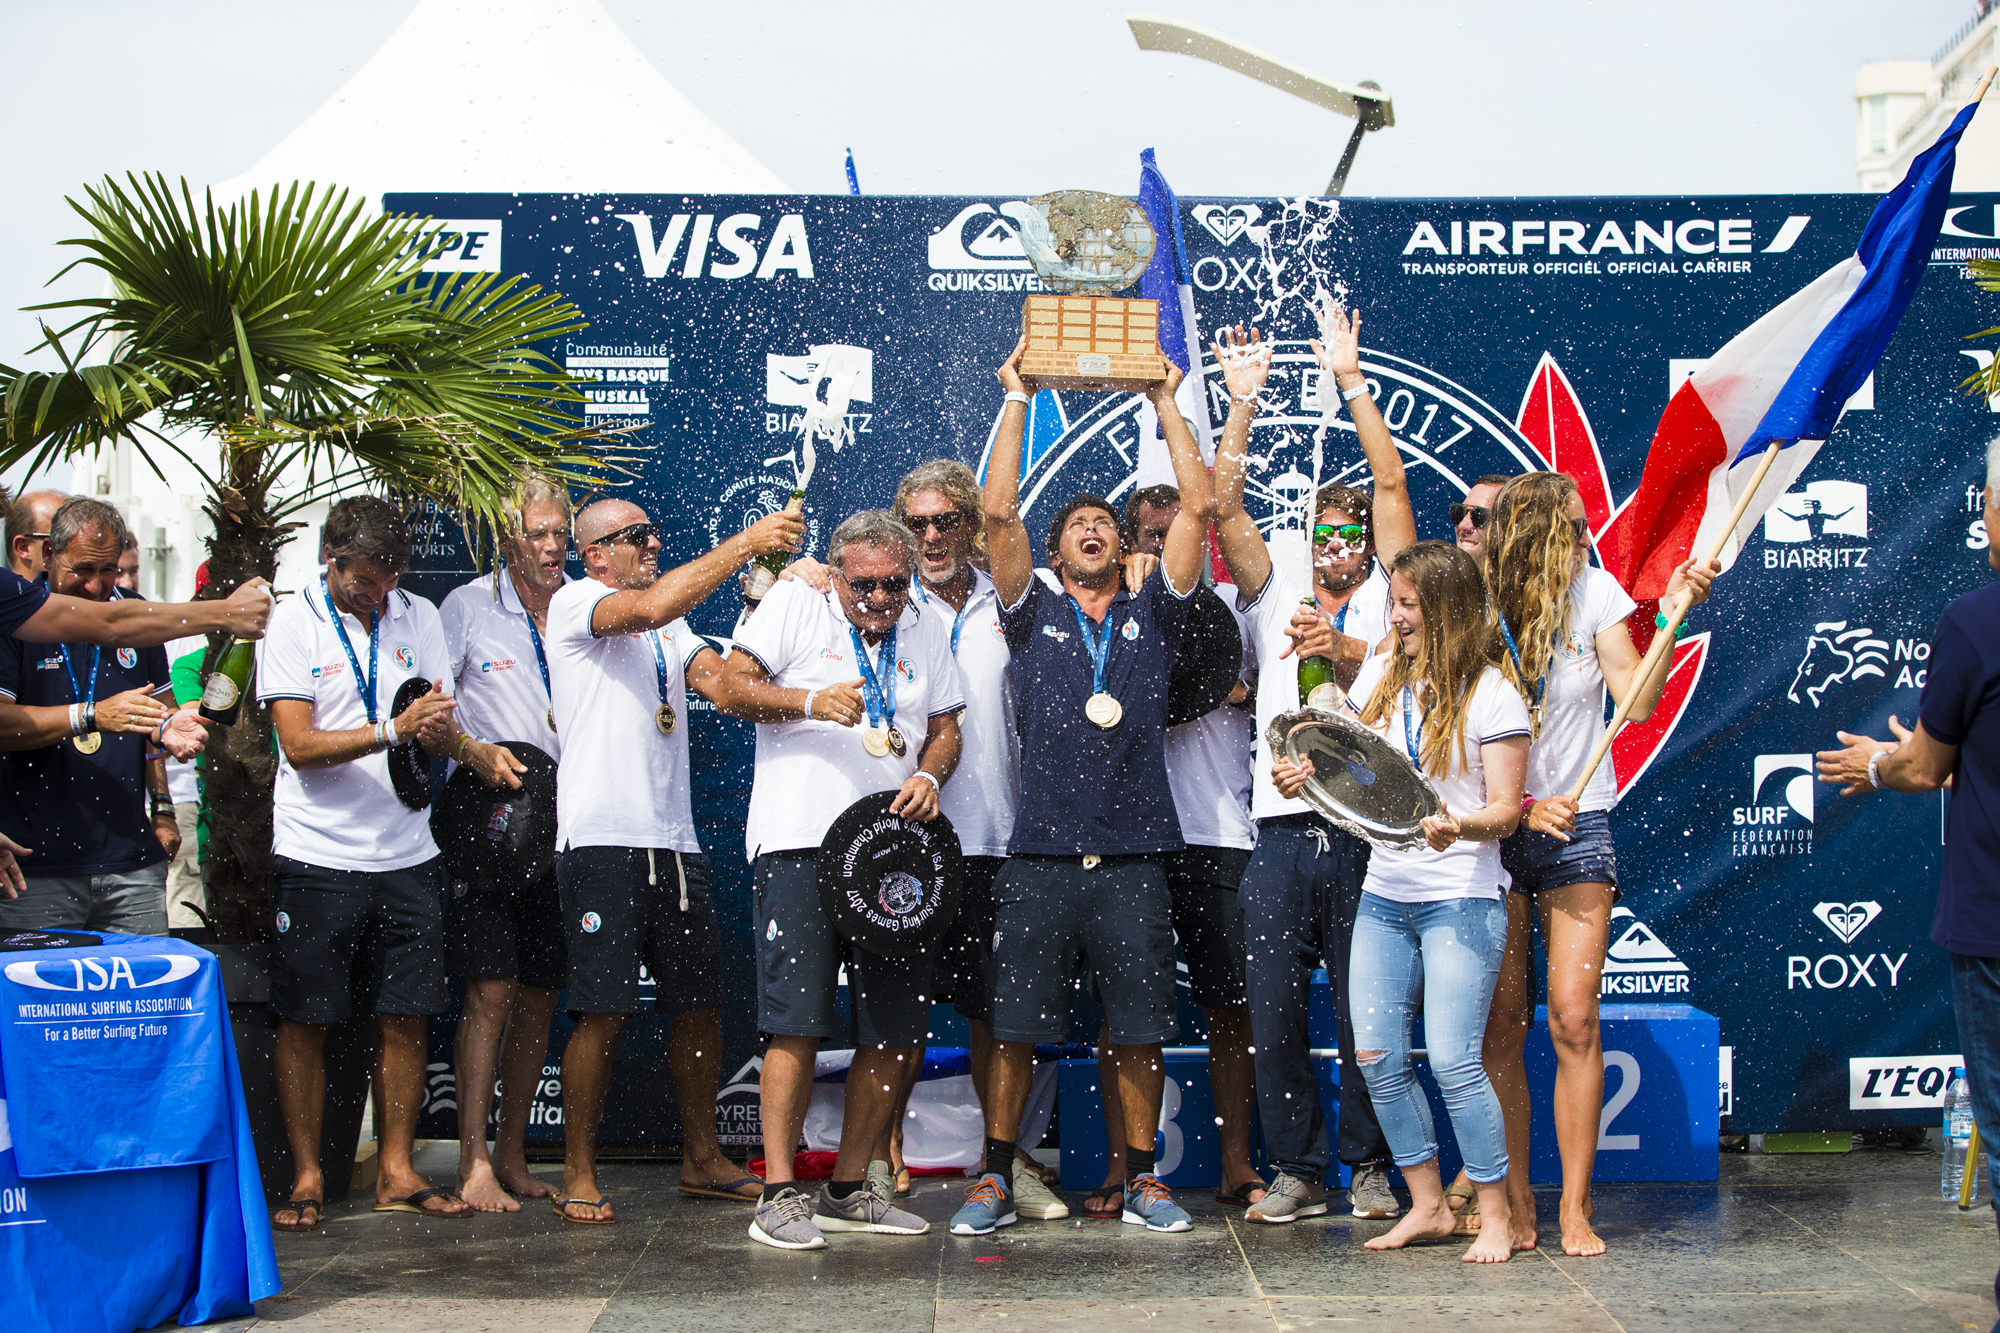 Click to enlarge image CEREMONIE_TEAM_FRANCE_FFS_ARRIETA_ARR_0128 LR.jpeg